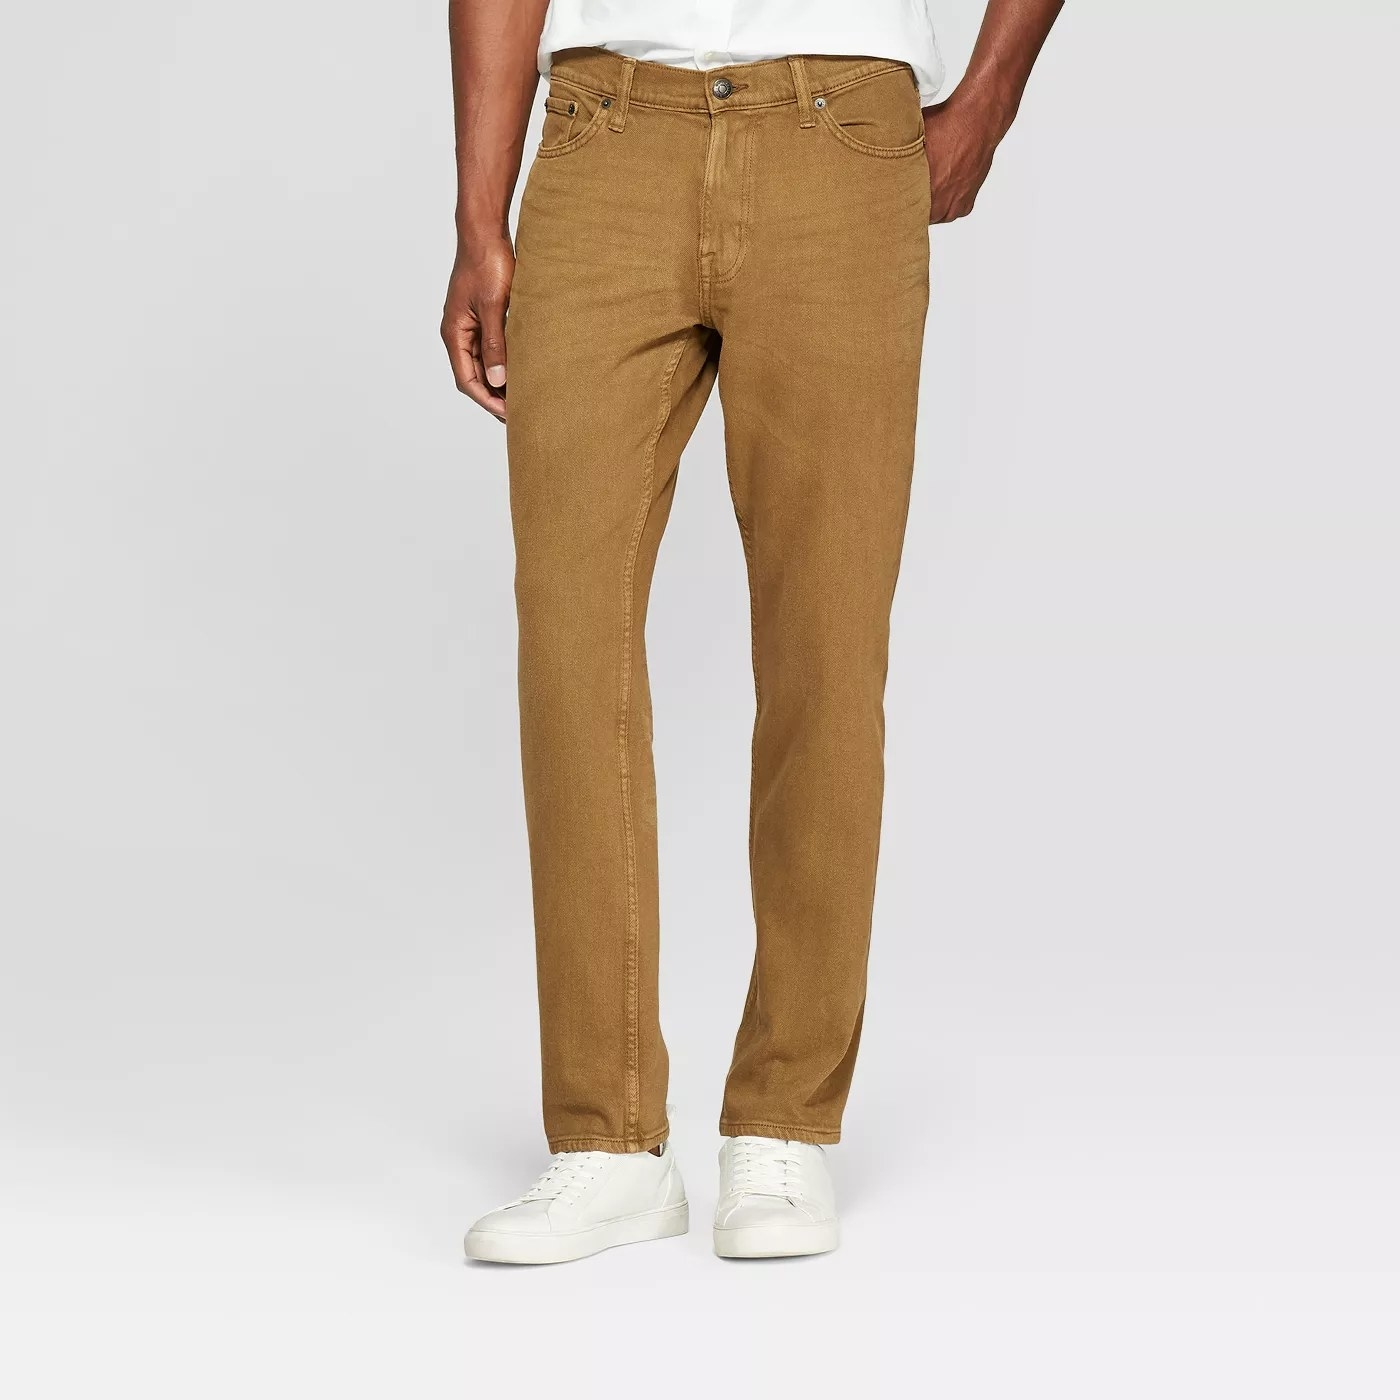 The jeans in khaki